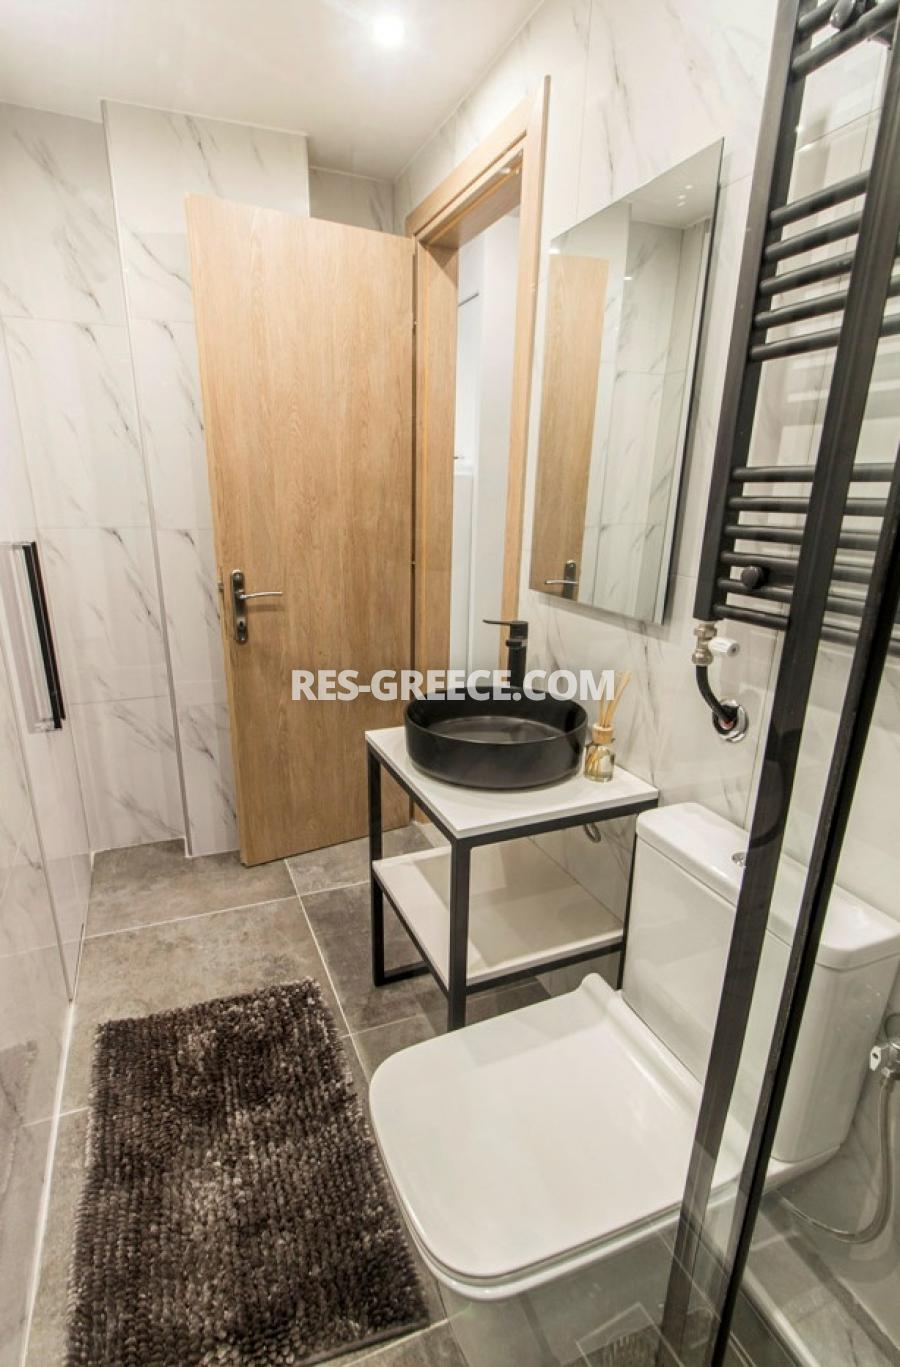 ?.Foka B, Central Macedonia, Greece - apartments in Thessaloniki center for long-term or short-term rent - Photo 12